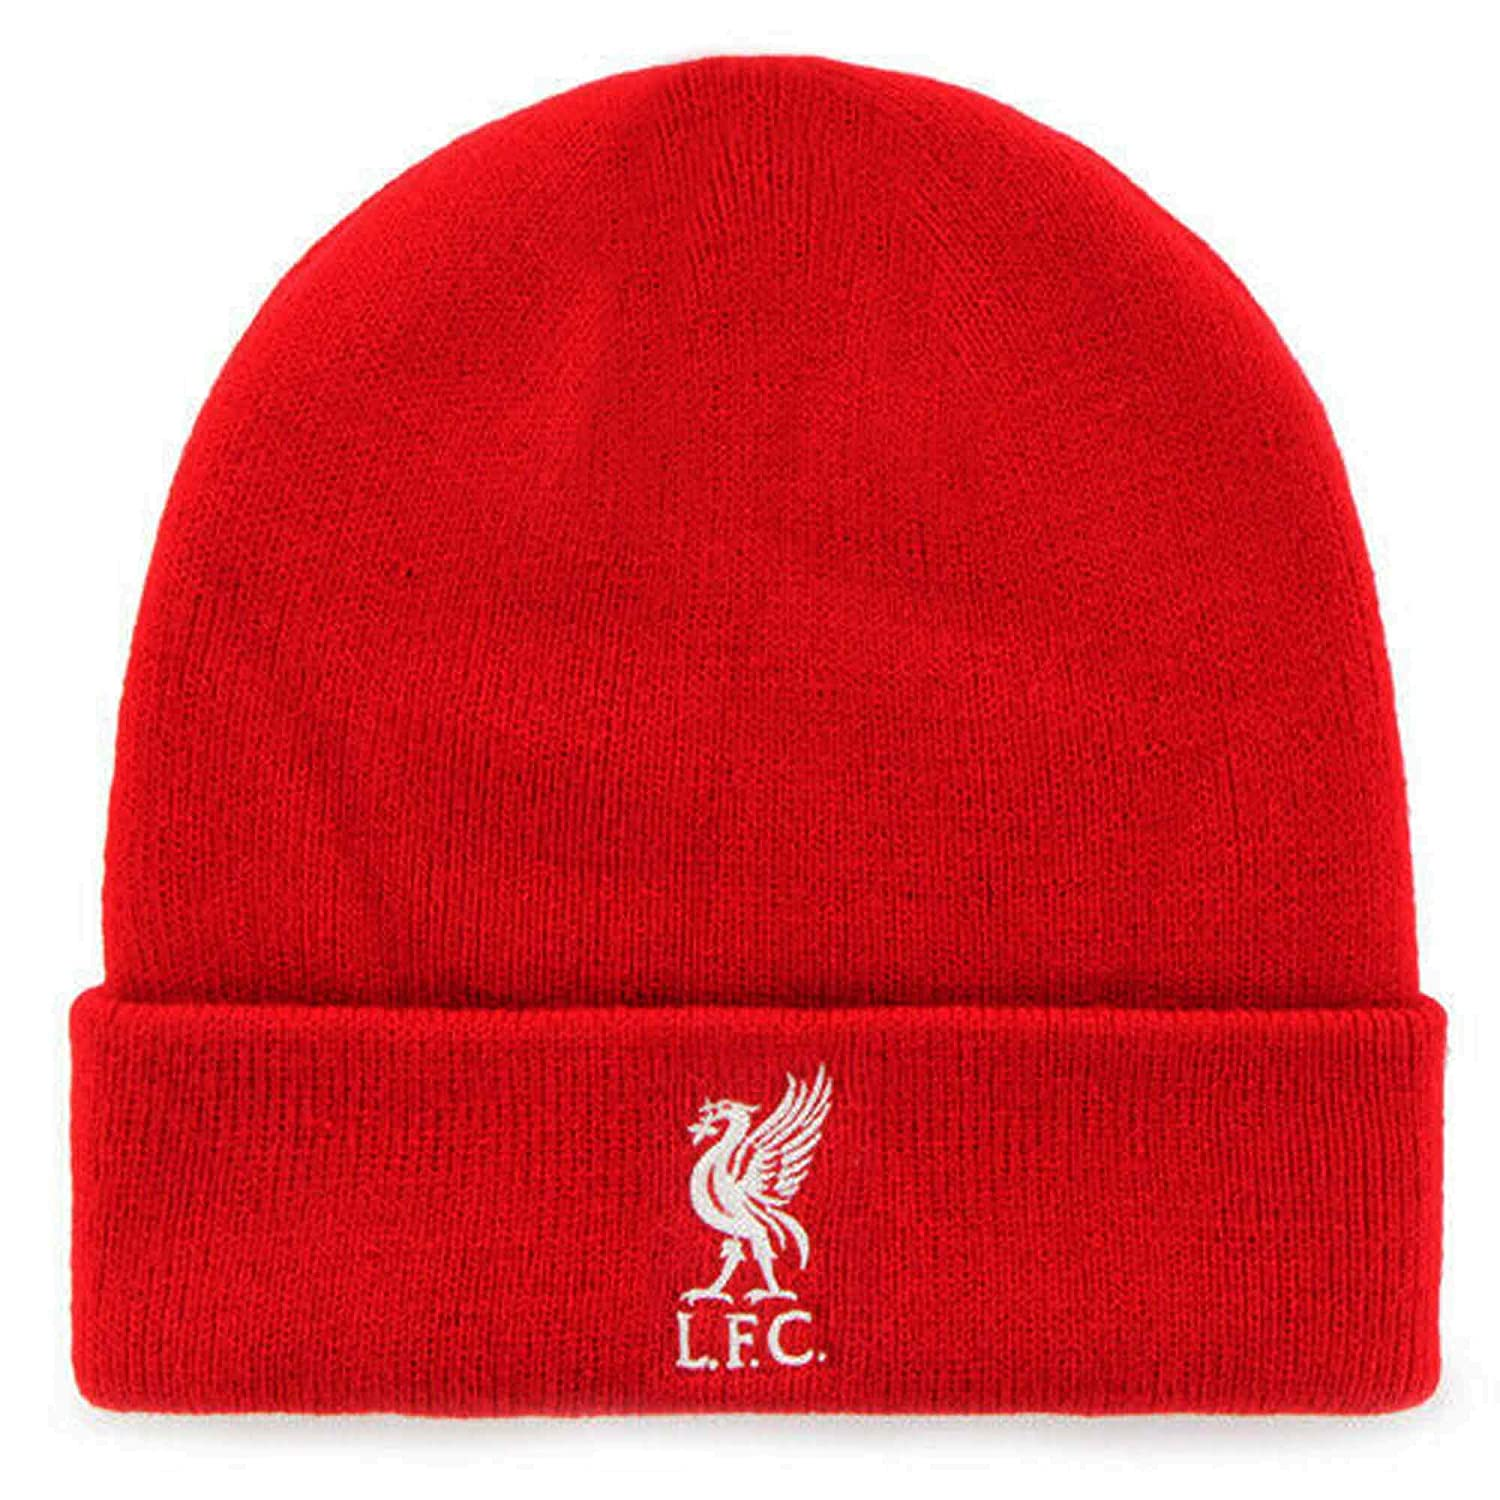 100/% Acrylic Super Reds Official Liverpool FC Winter Warmers Hat /& Bar Scarf Set